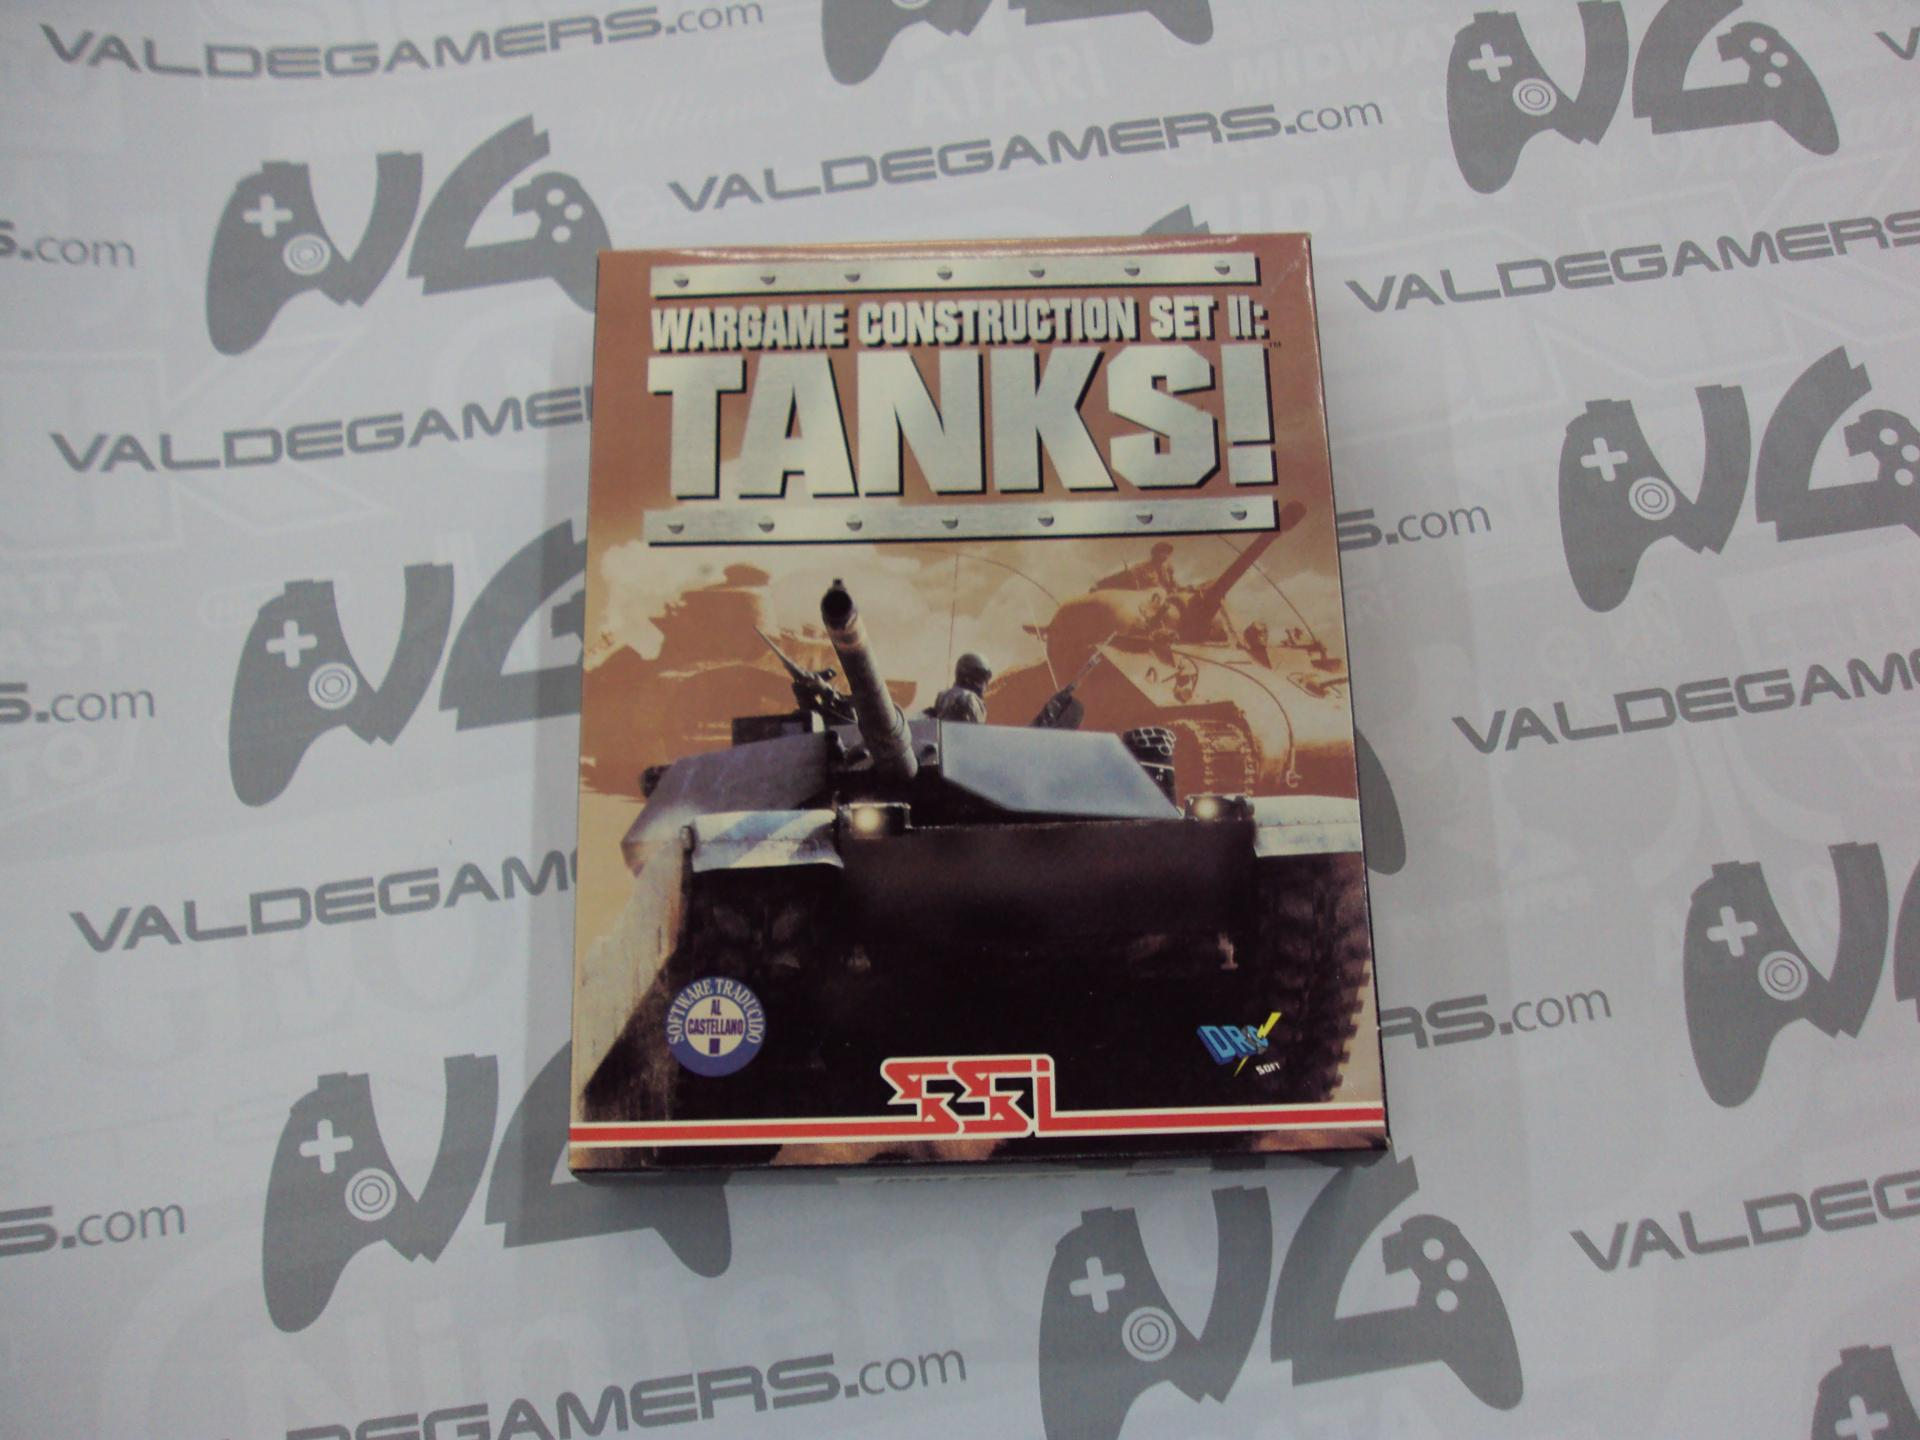 "Wargame construction set 2 Tanks PC 3.5"" IBM"